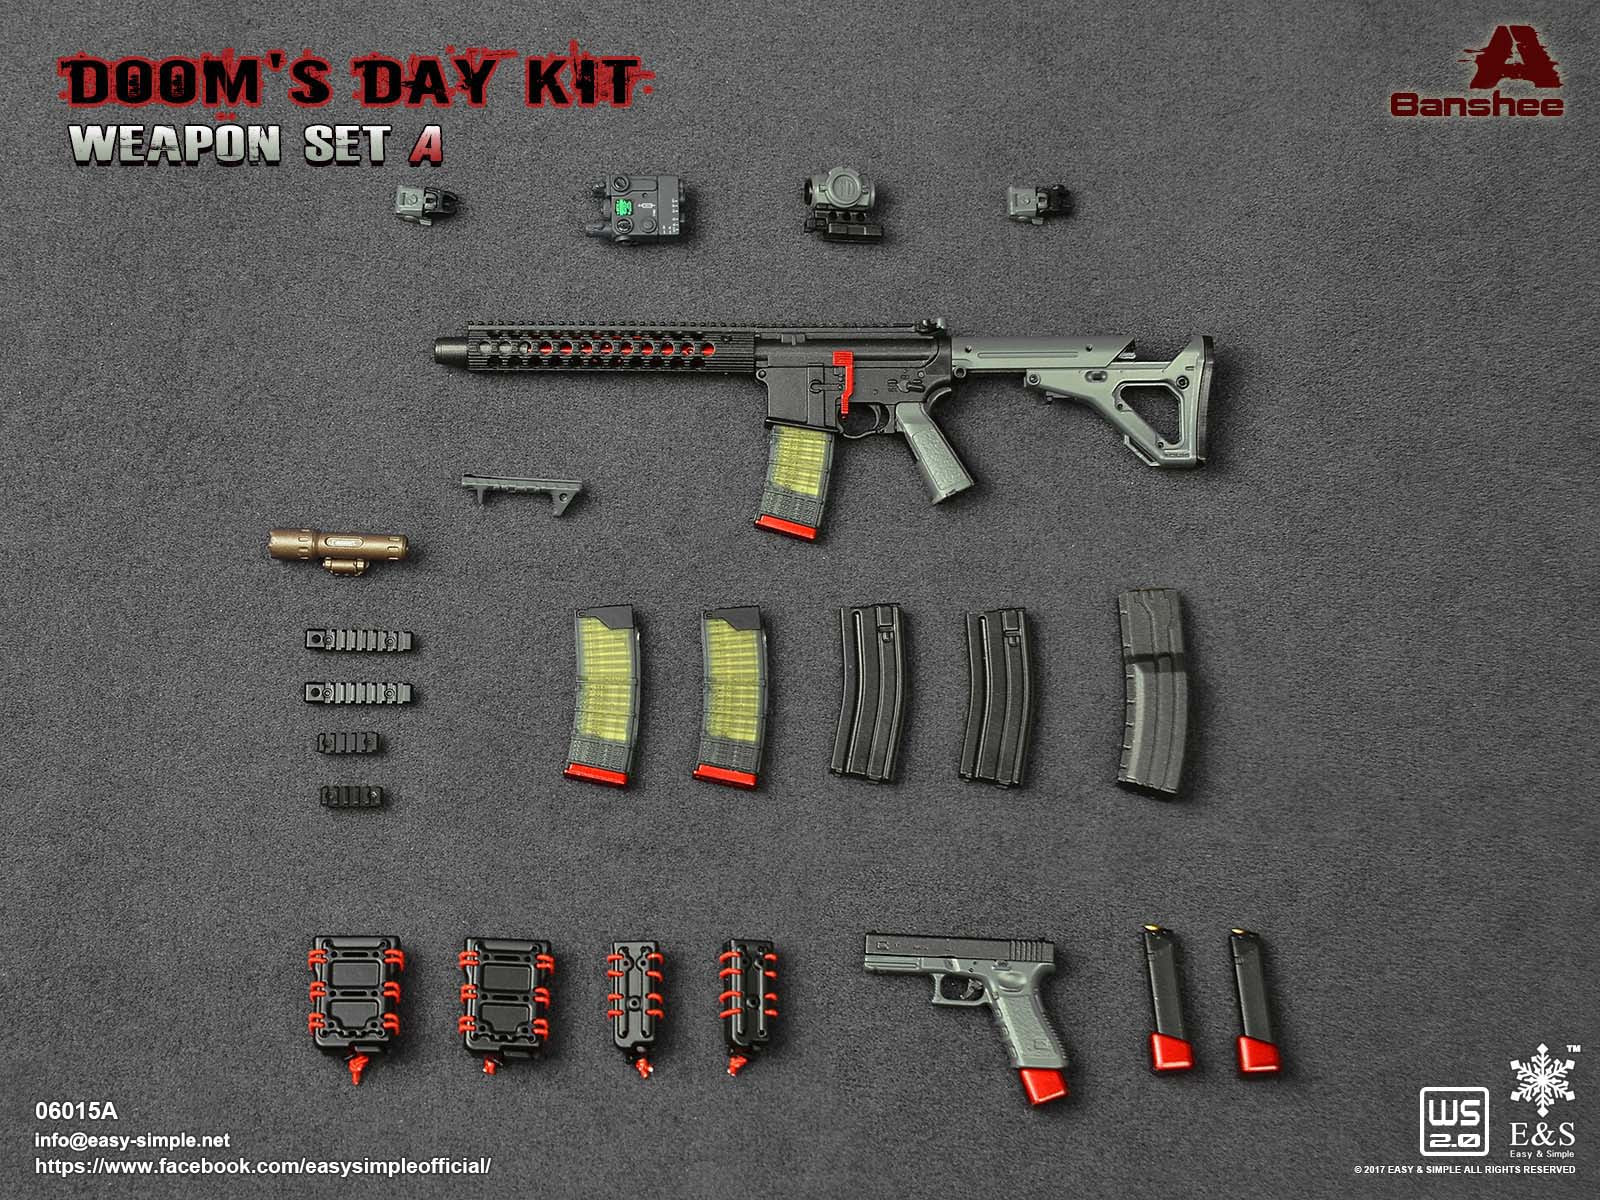 PREORDER E&S Doom's Day Kit Weapon Set BANSHEE Rifle Mint in Box